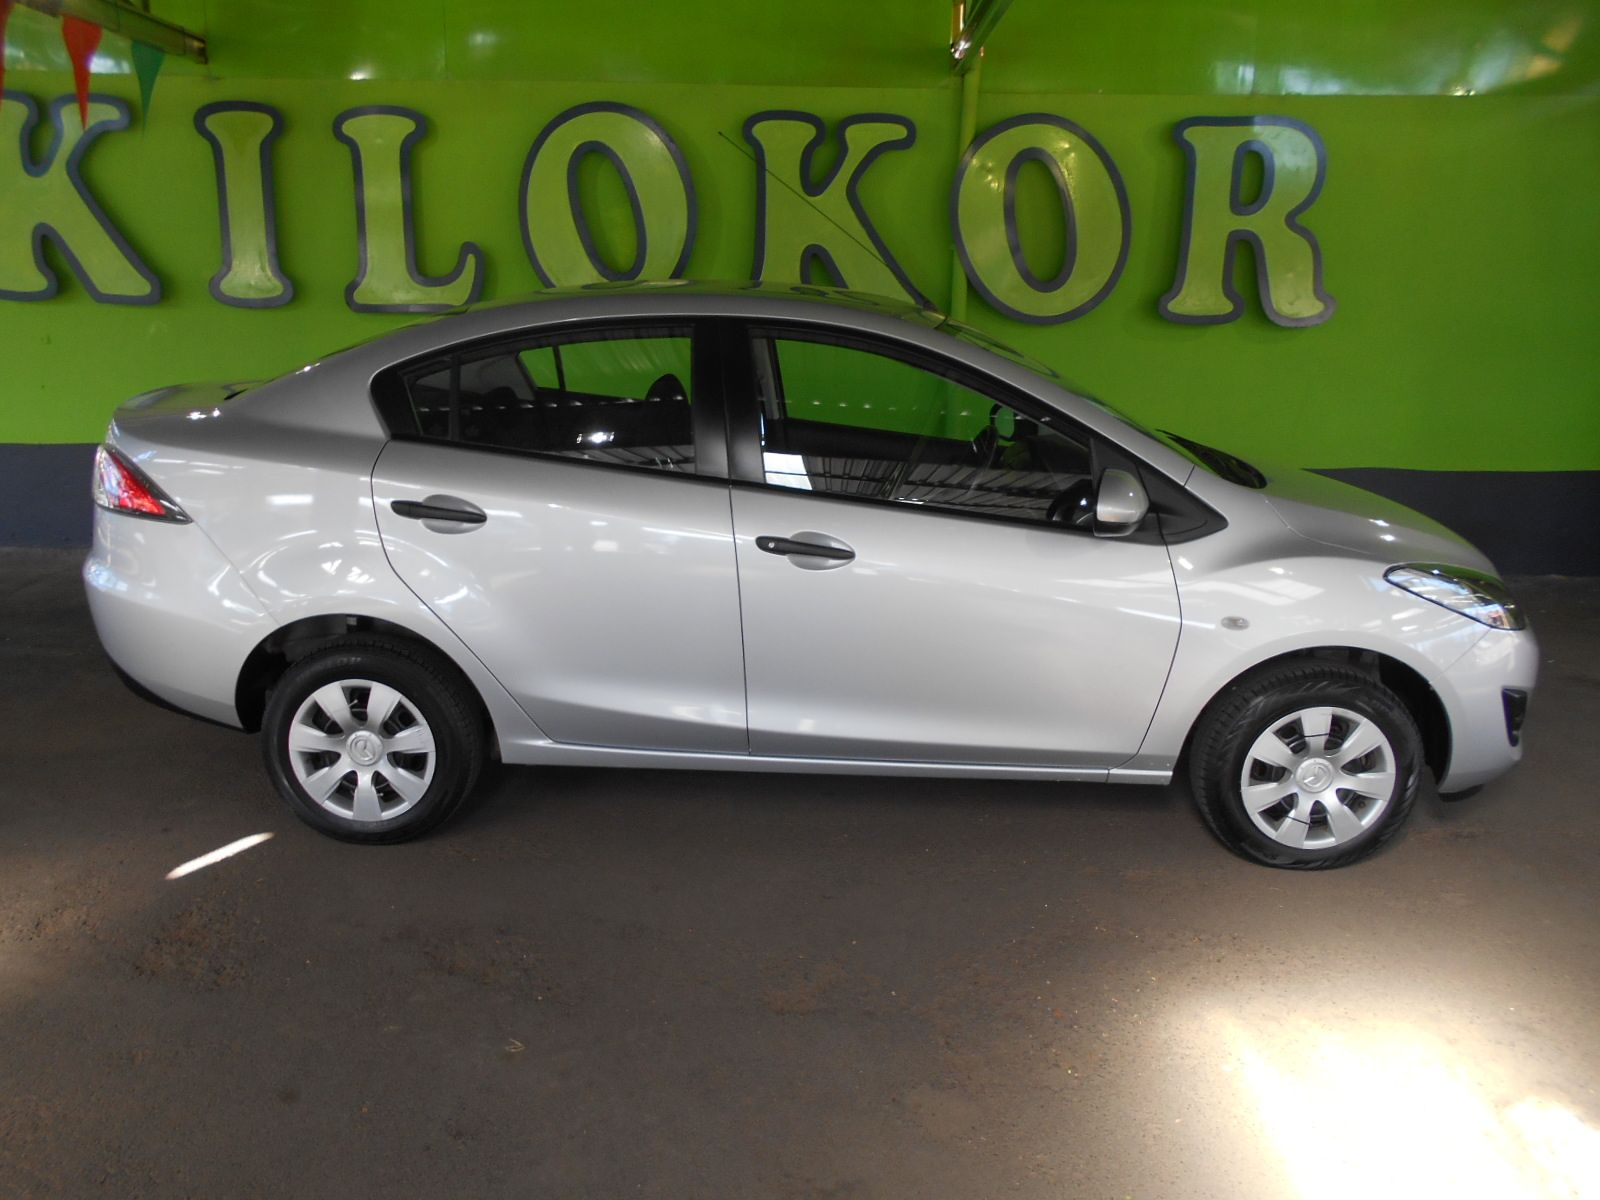 2011 mazda 2 sedan r 118 990 for sale kilokor motors